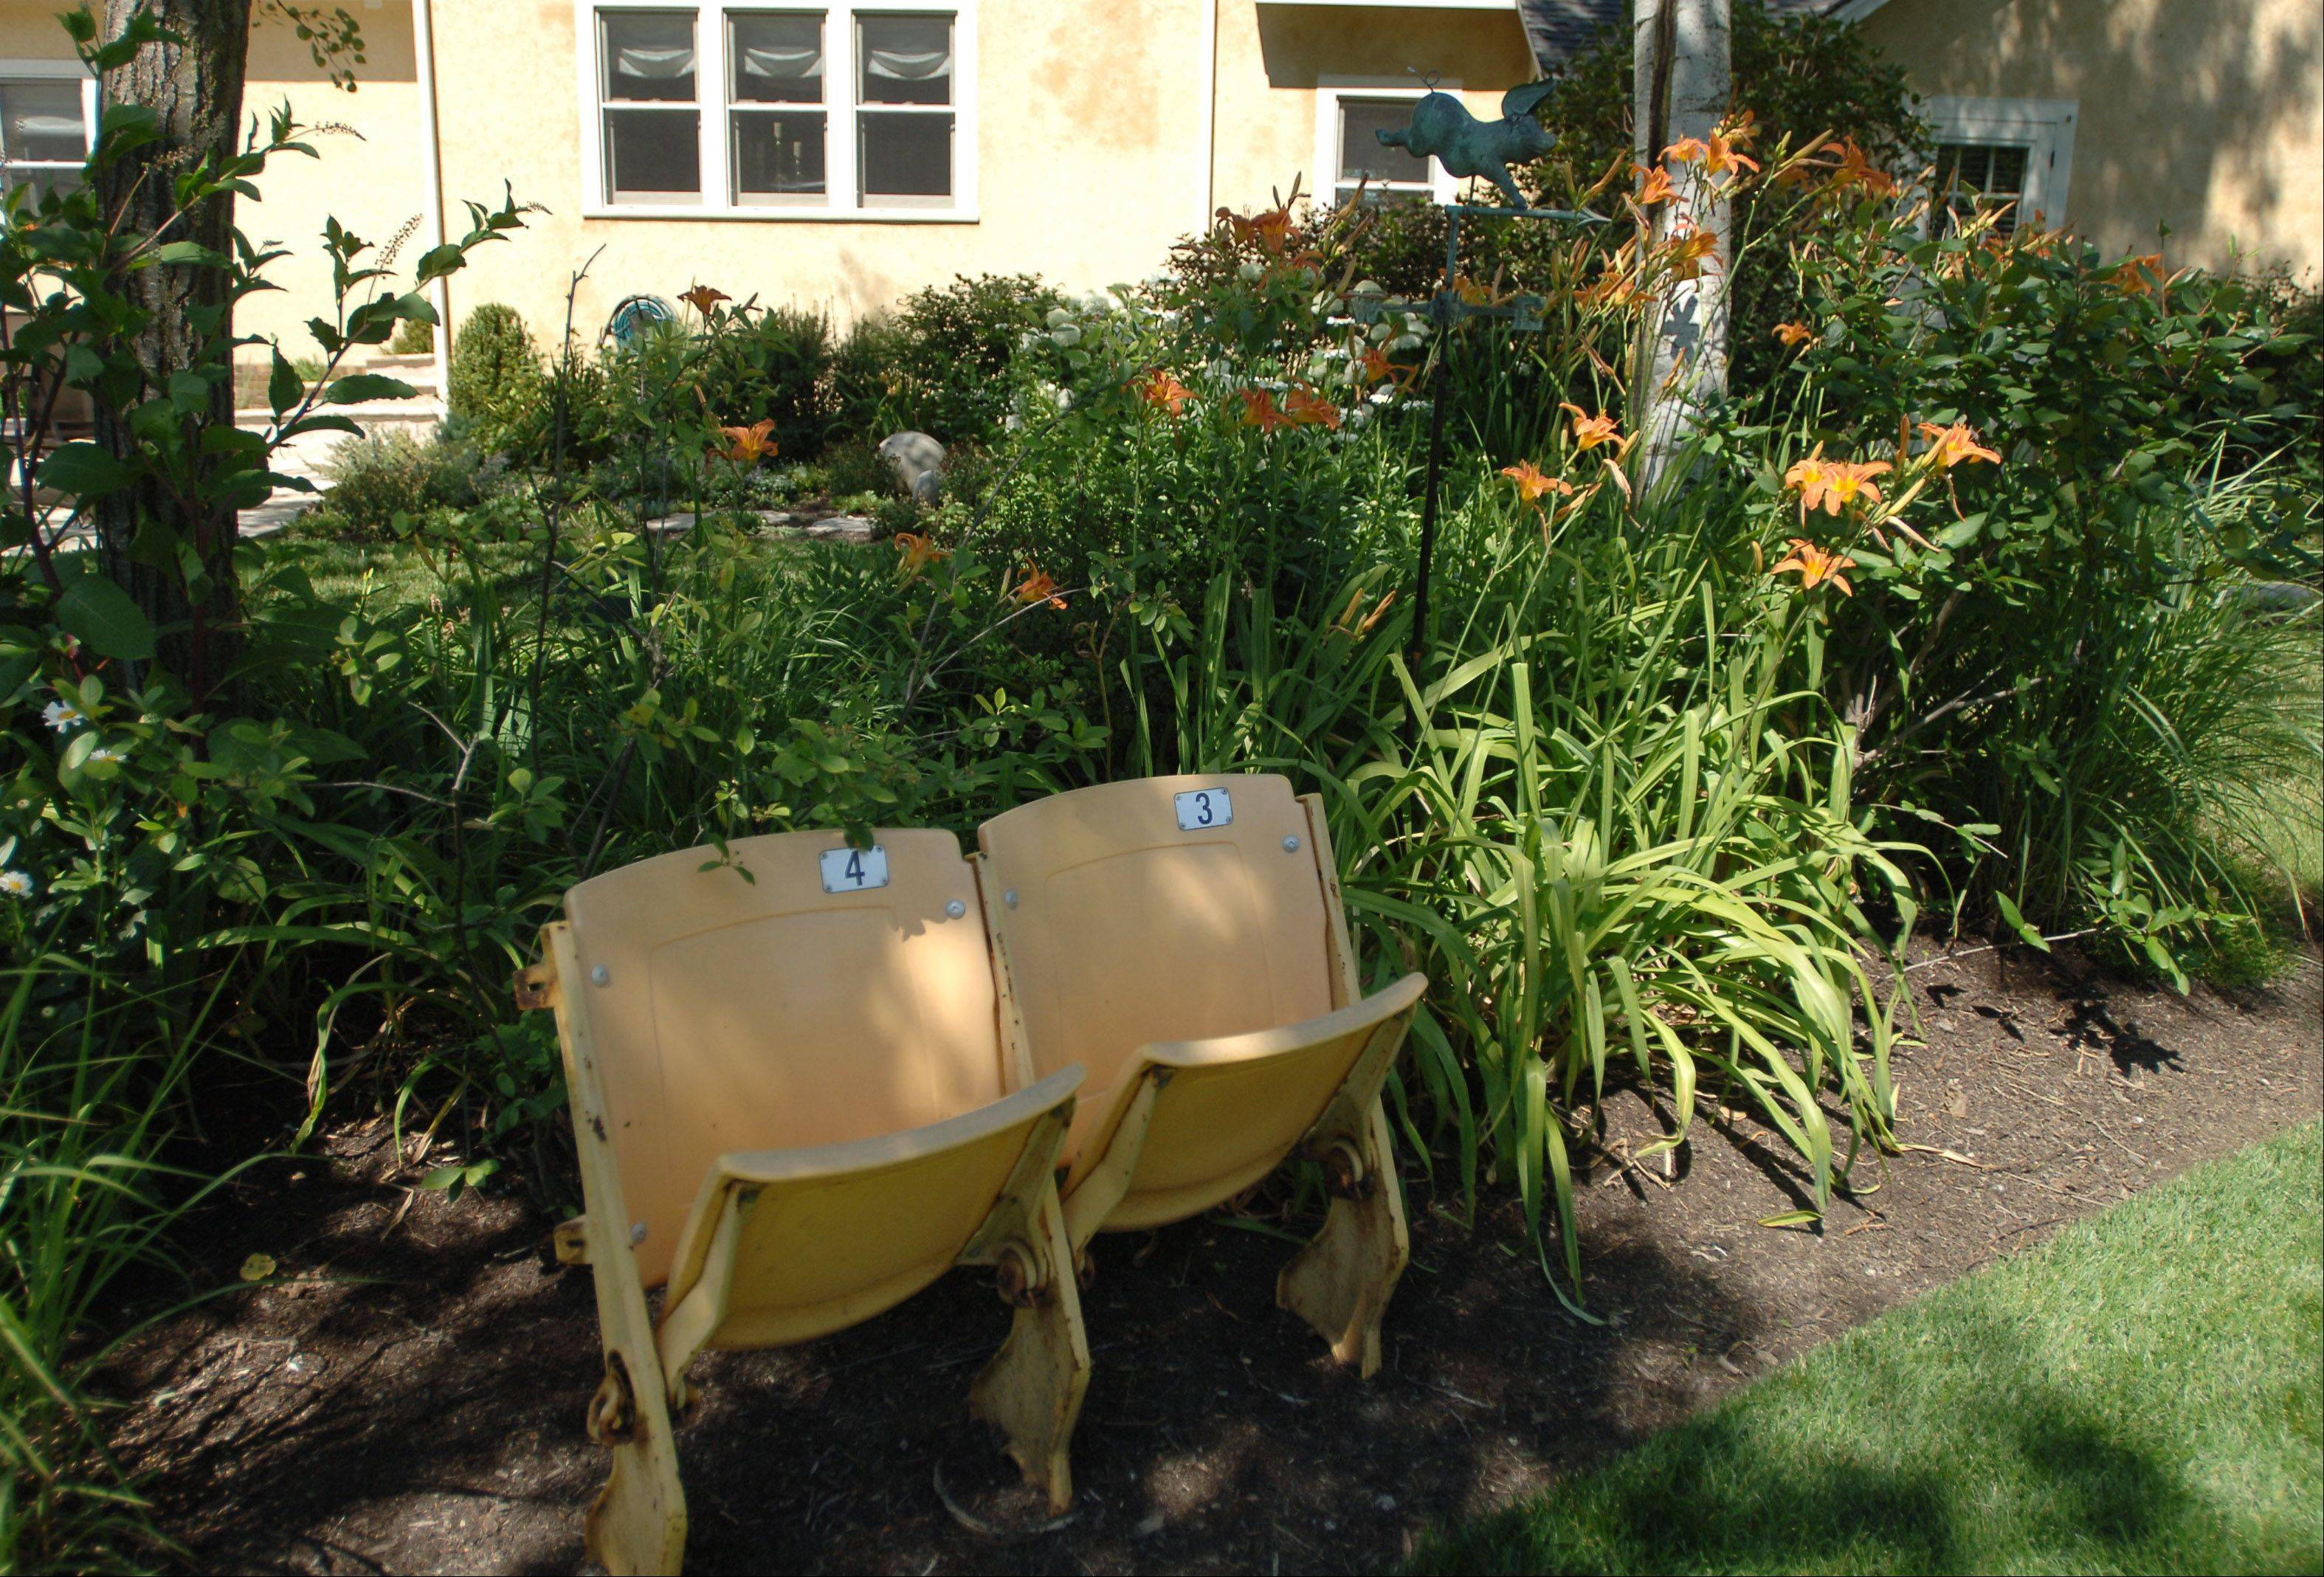 Two old seats from Soldier Field sit in Susan Brunstrum's garden.